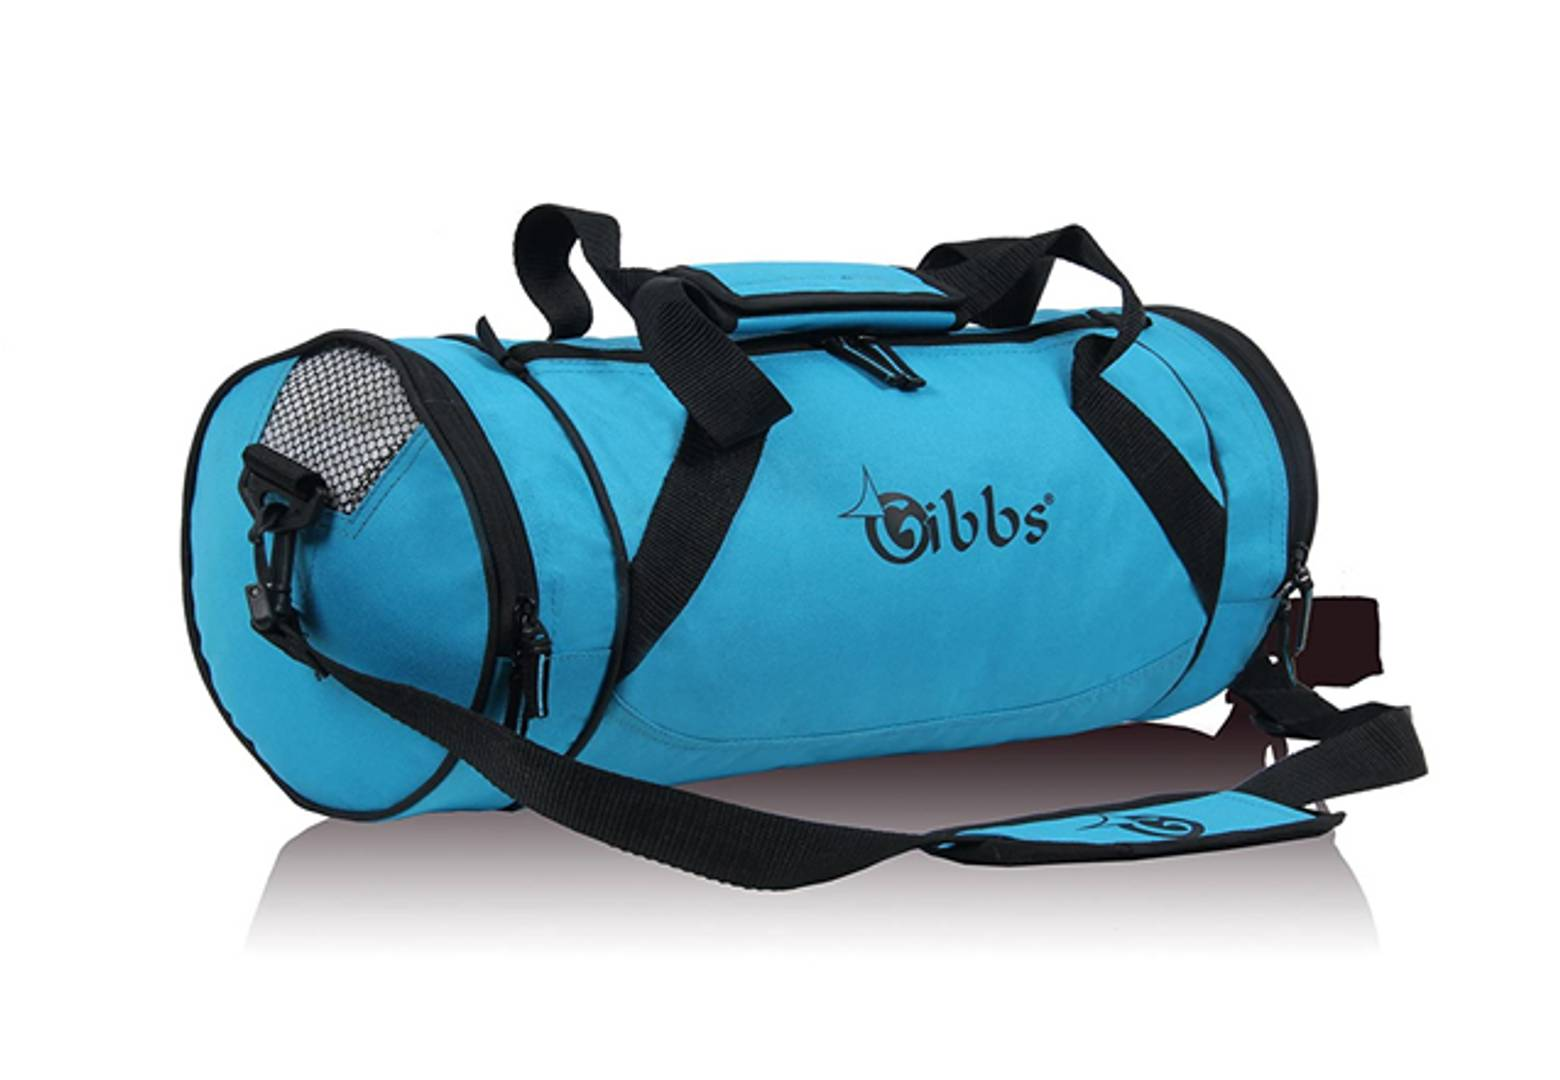 TRAVEL DUFFEL Bag (BLACK BLUE)